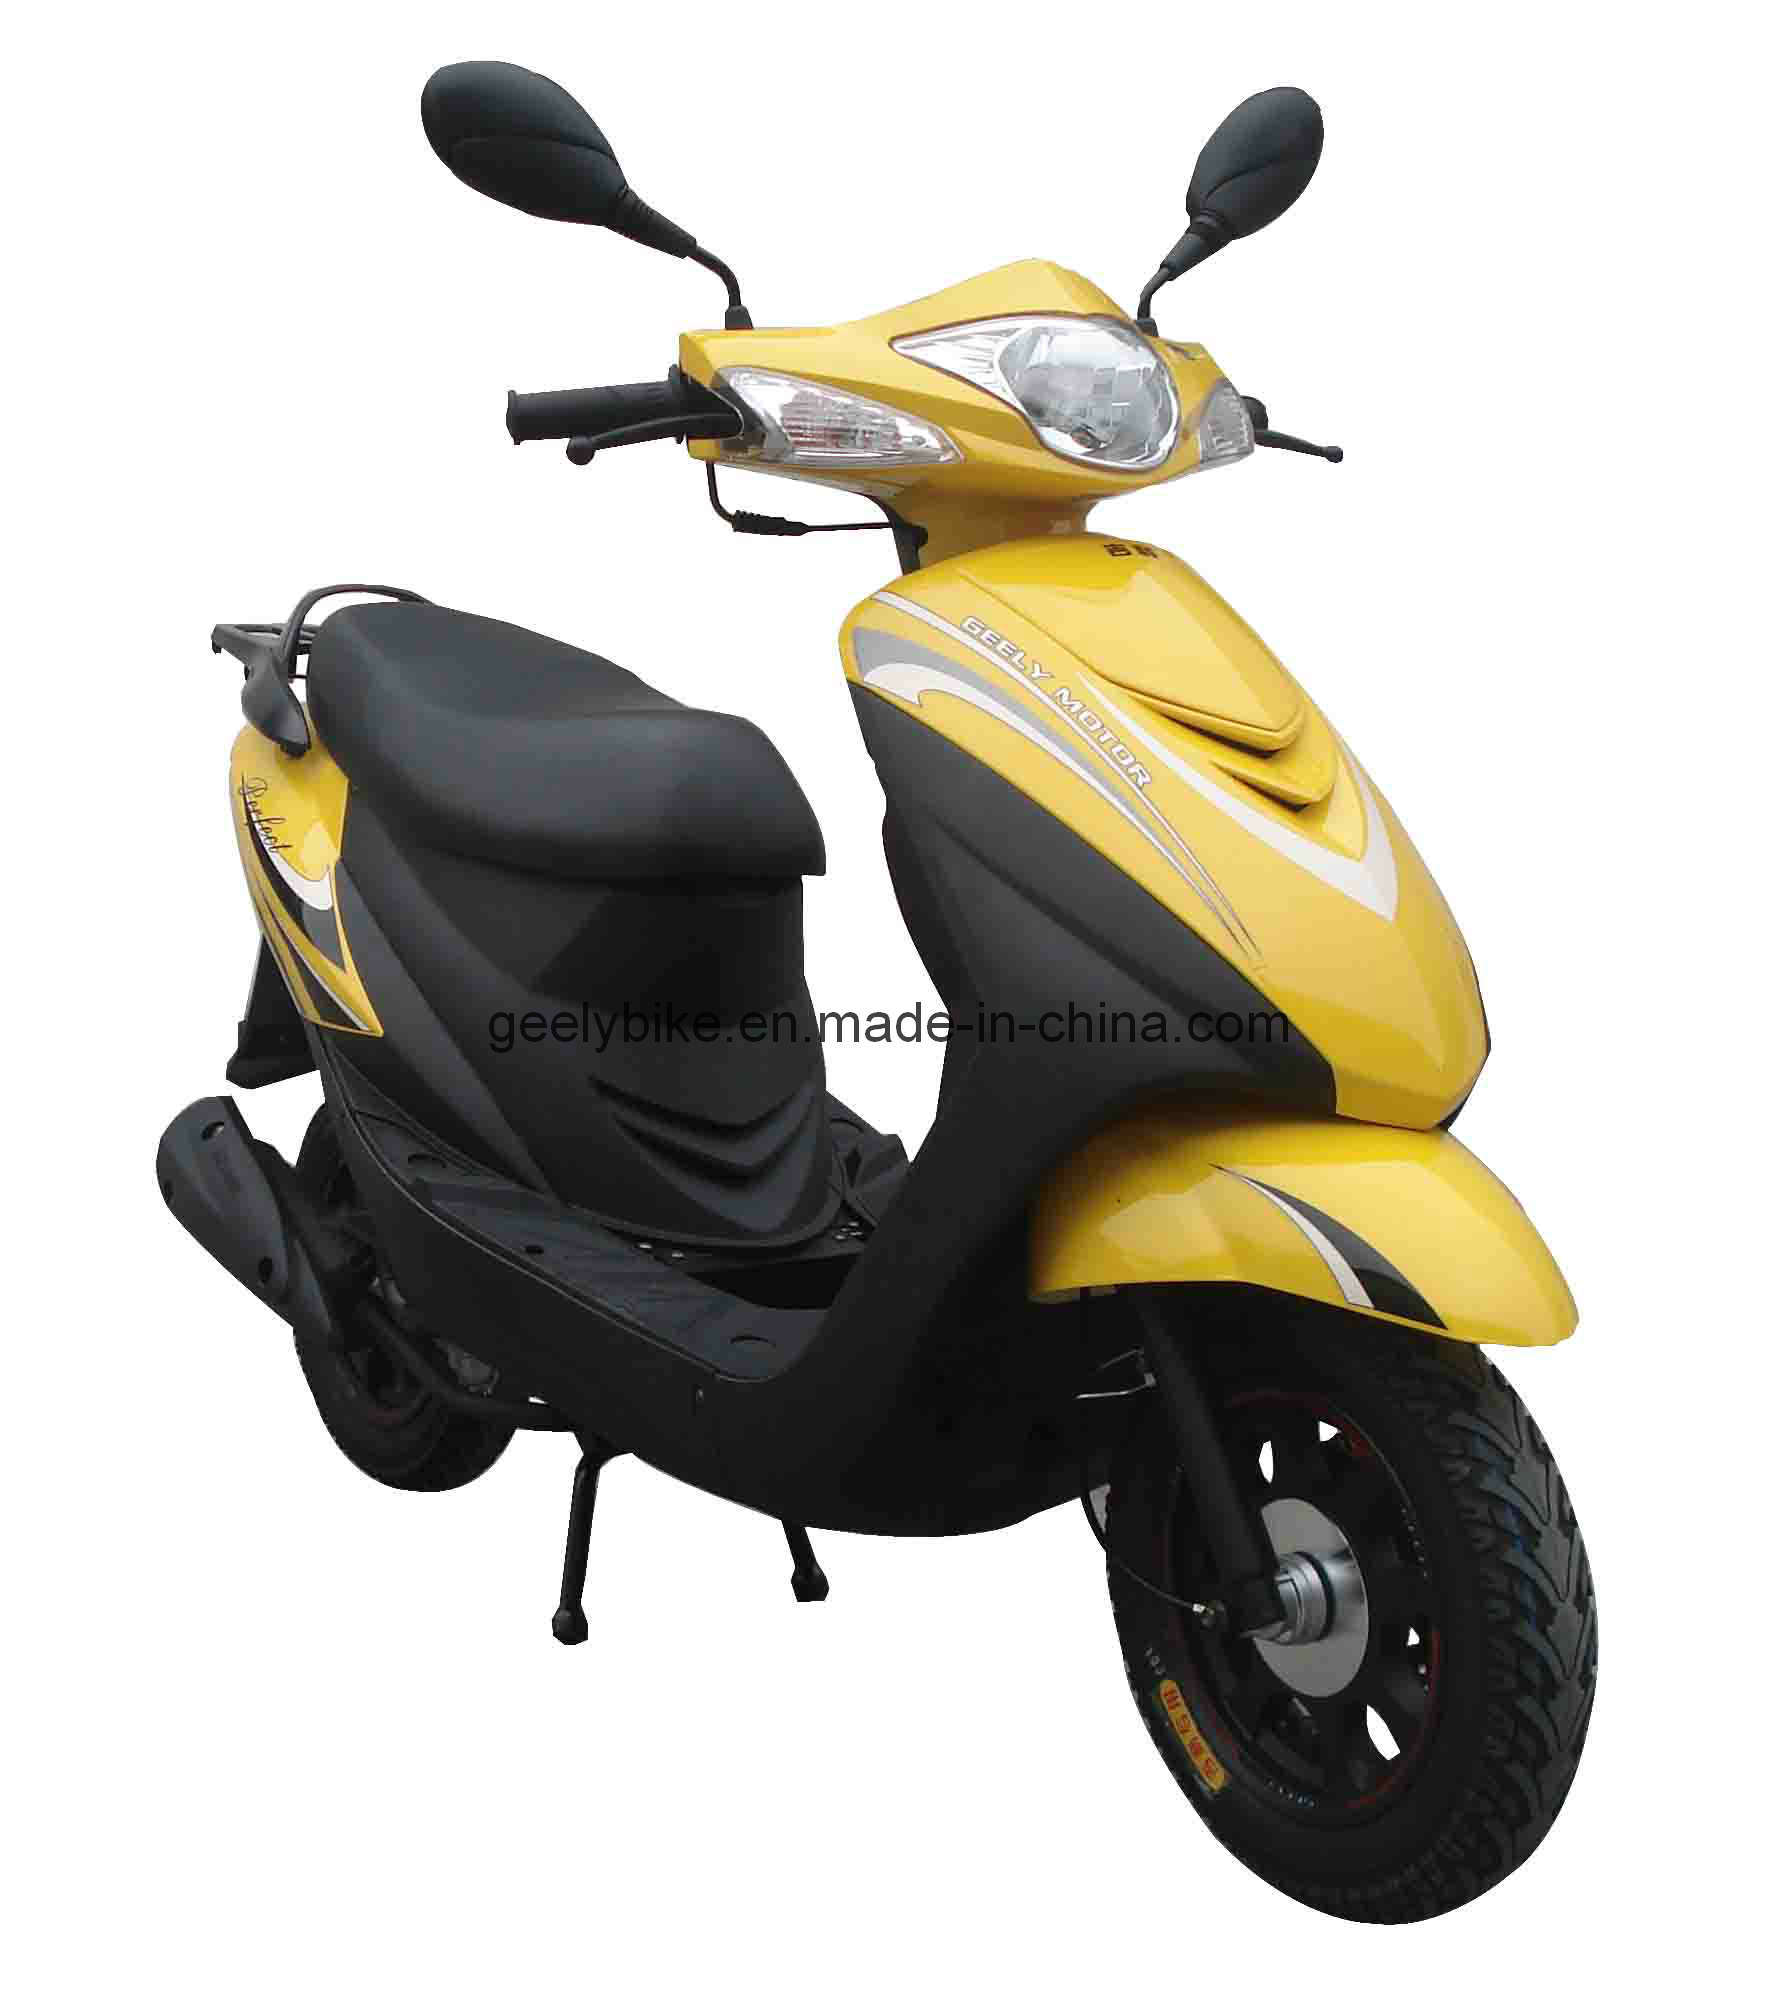 Geely moped